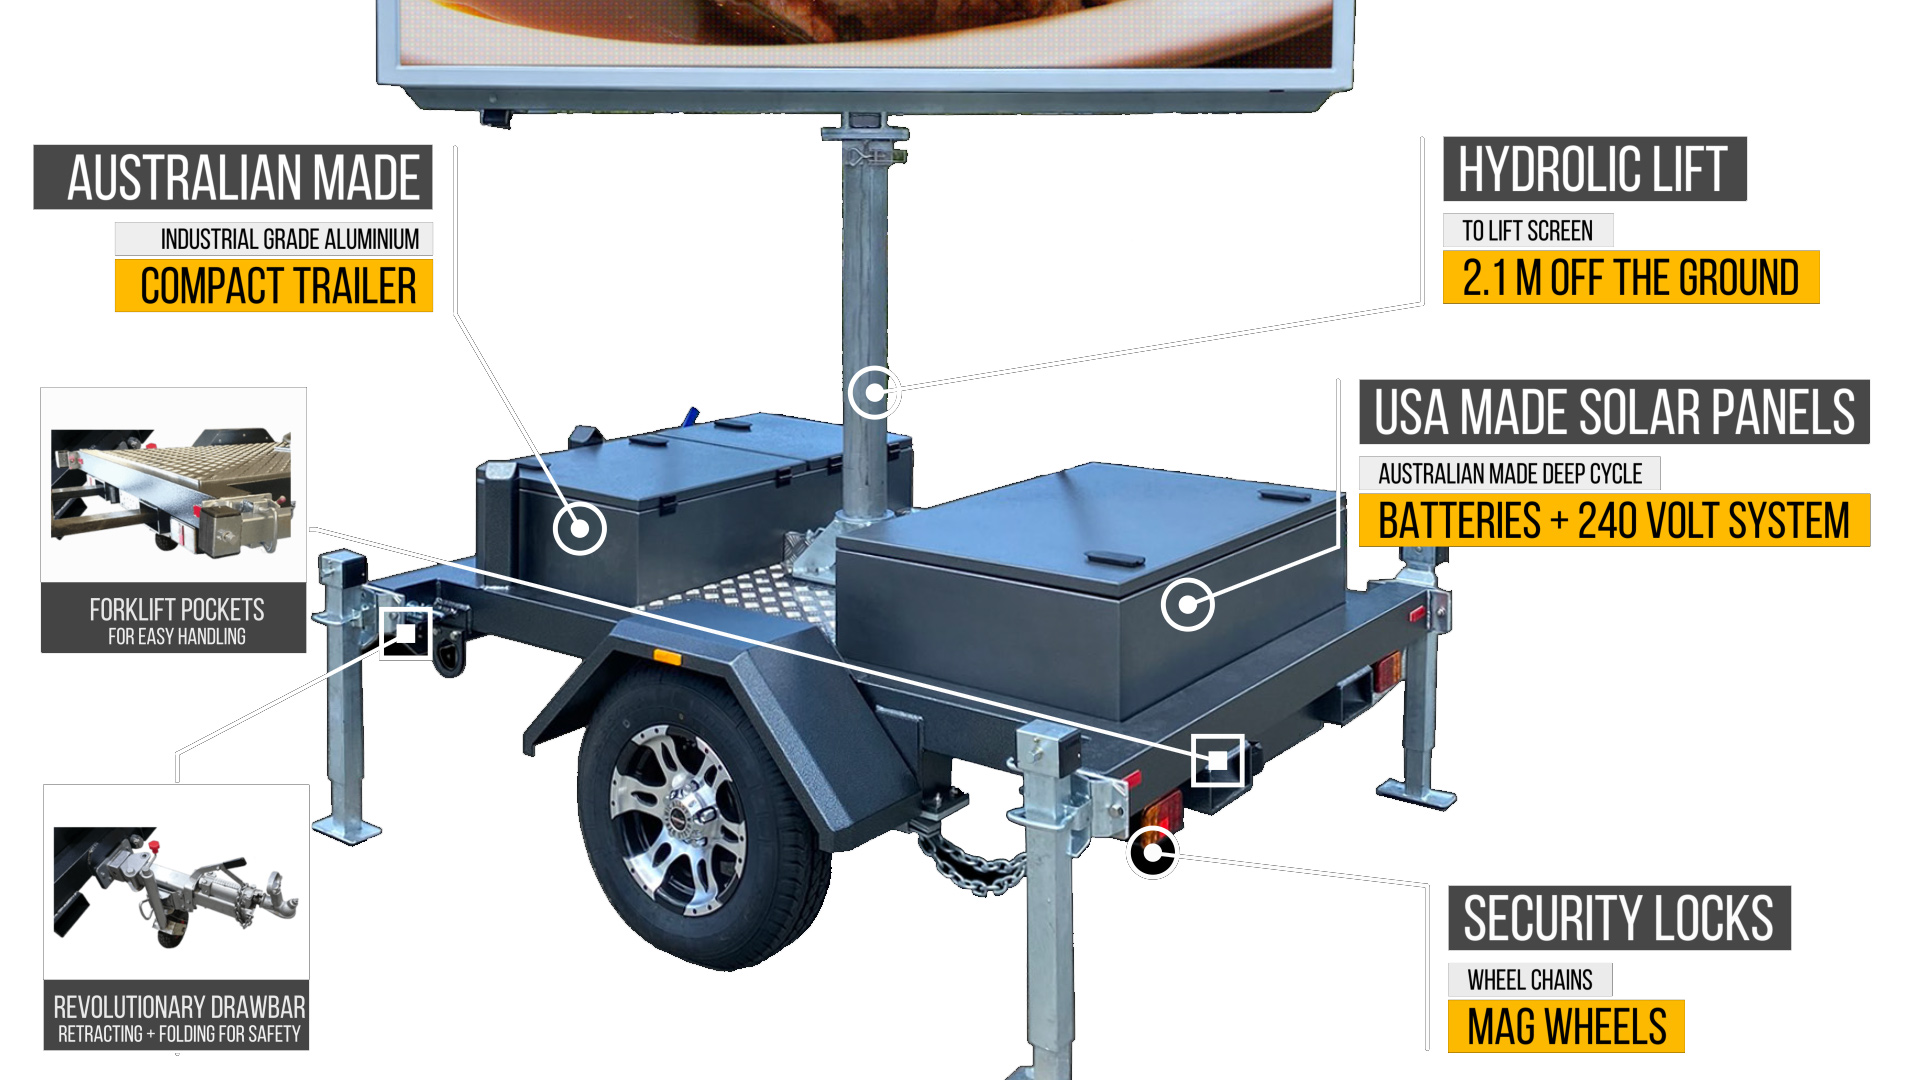 Rugged and Robust Australian made and assemled compact Trailer is made from Australian industrial grade aluminium.